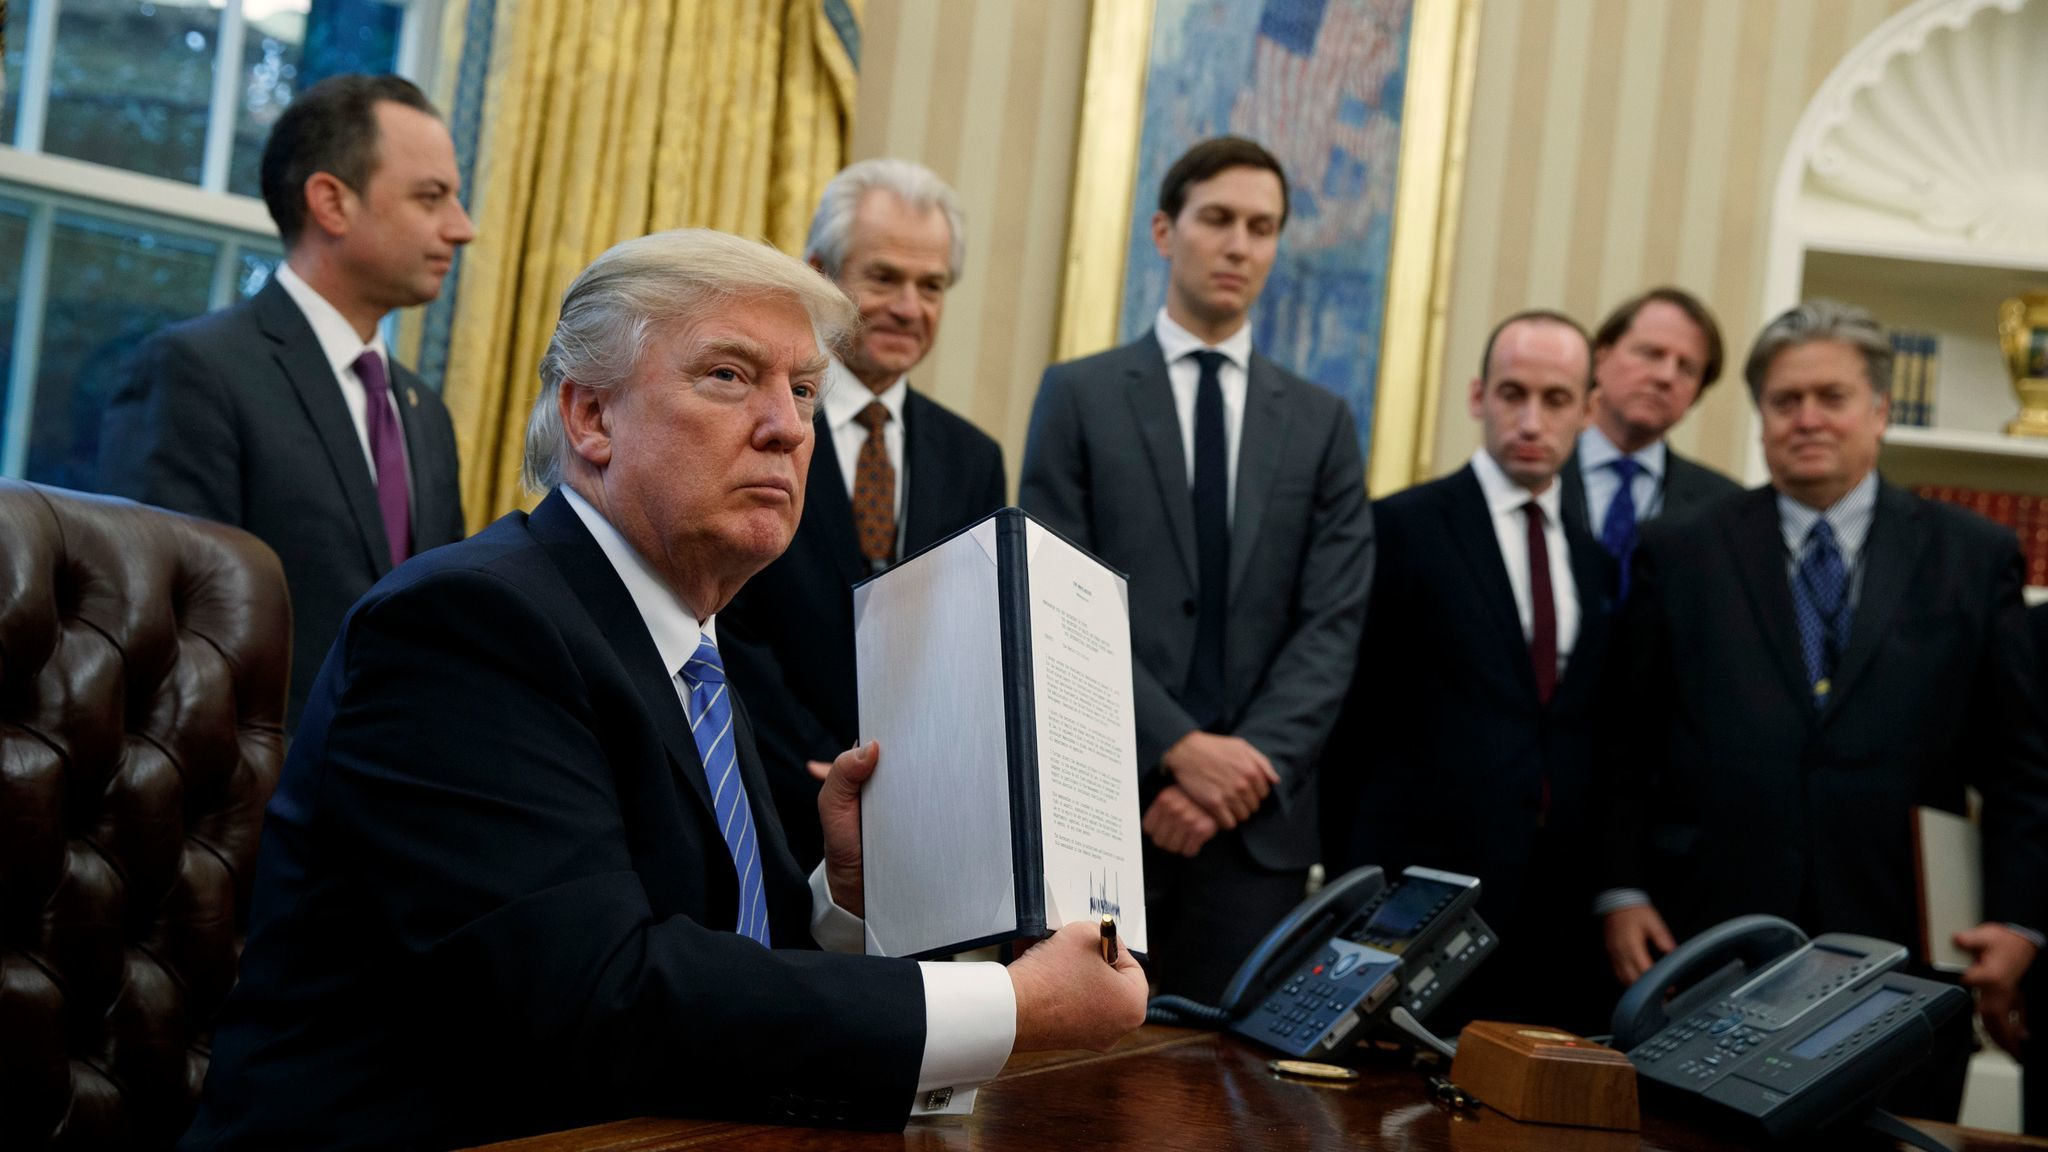 President Trump shows off a signed executive order reinstating a ban on funding for international organizations that provide abortion services or related counseling.